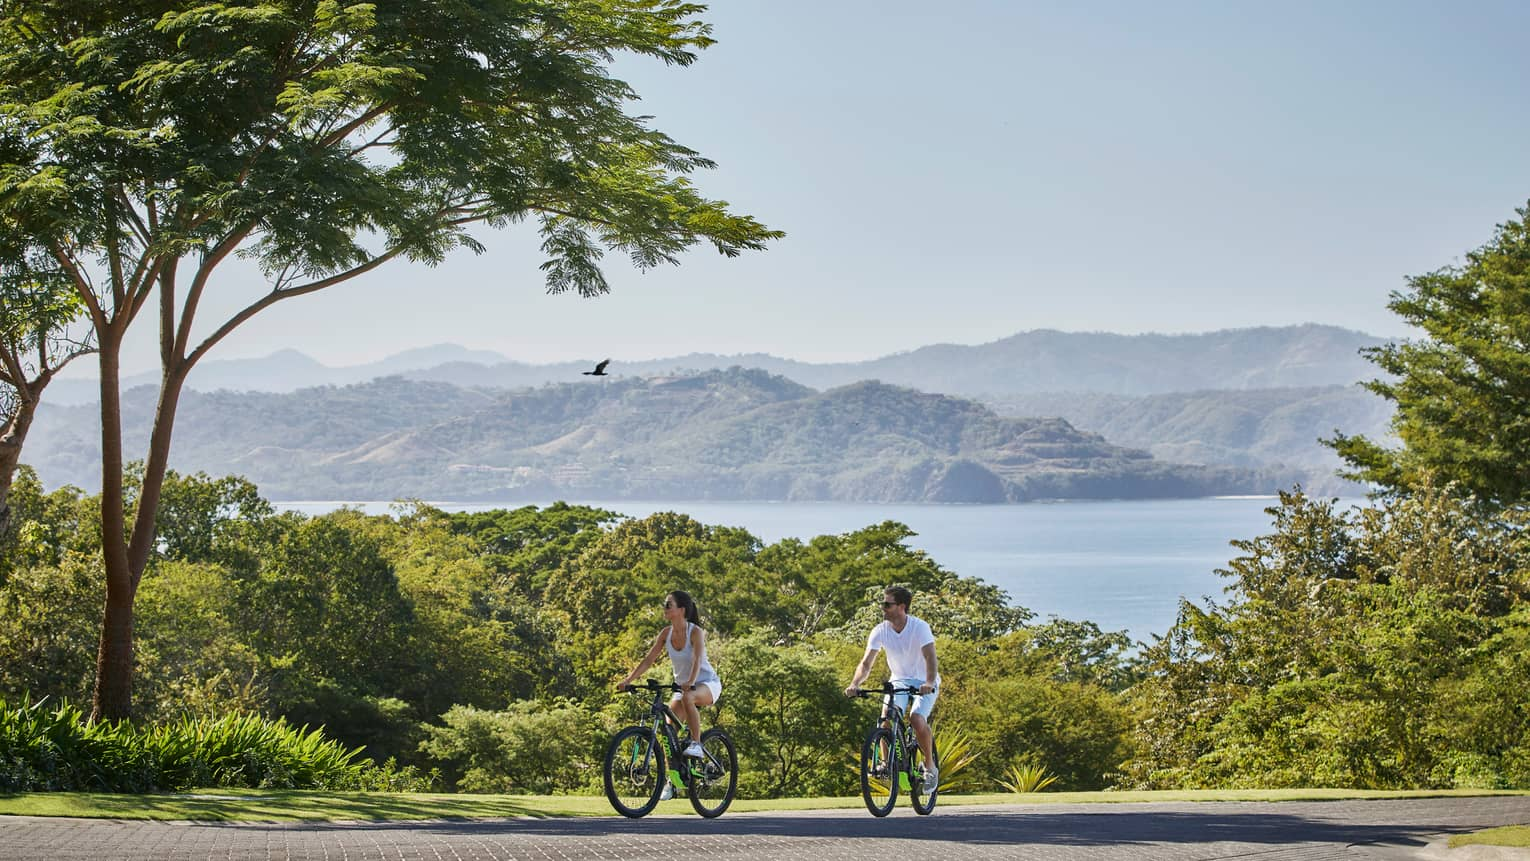 Couple rides bicycles along road on hill with trees, mountains and ocean in background